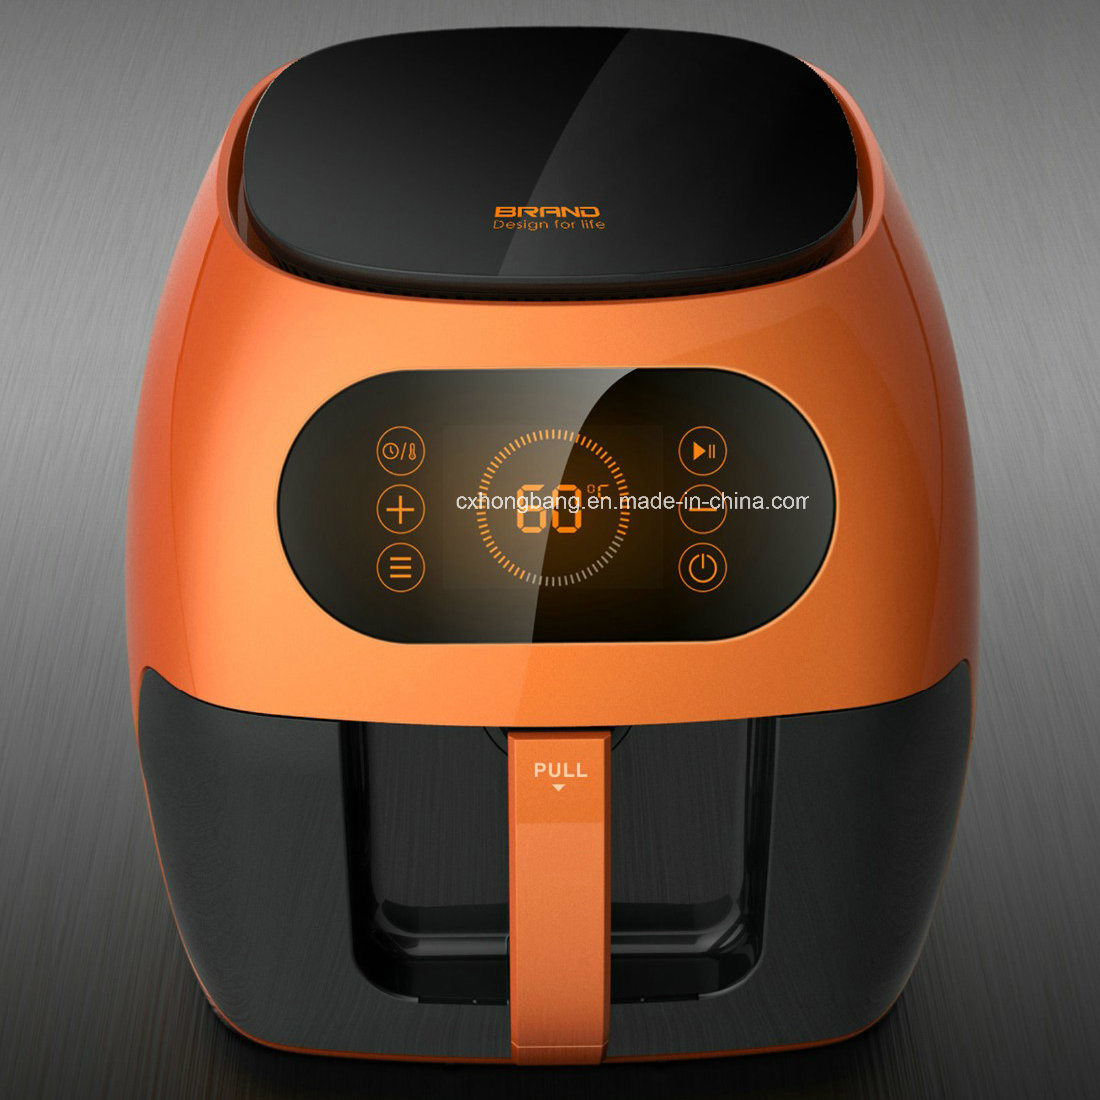 LCD Display Large Capacity Electrical Air Fryer Without Oil (HB-808)